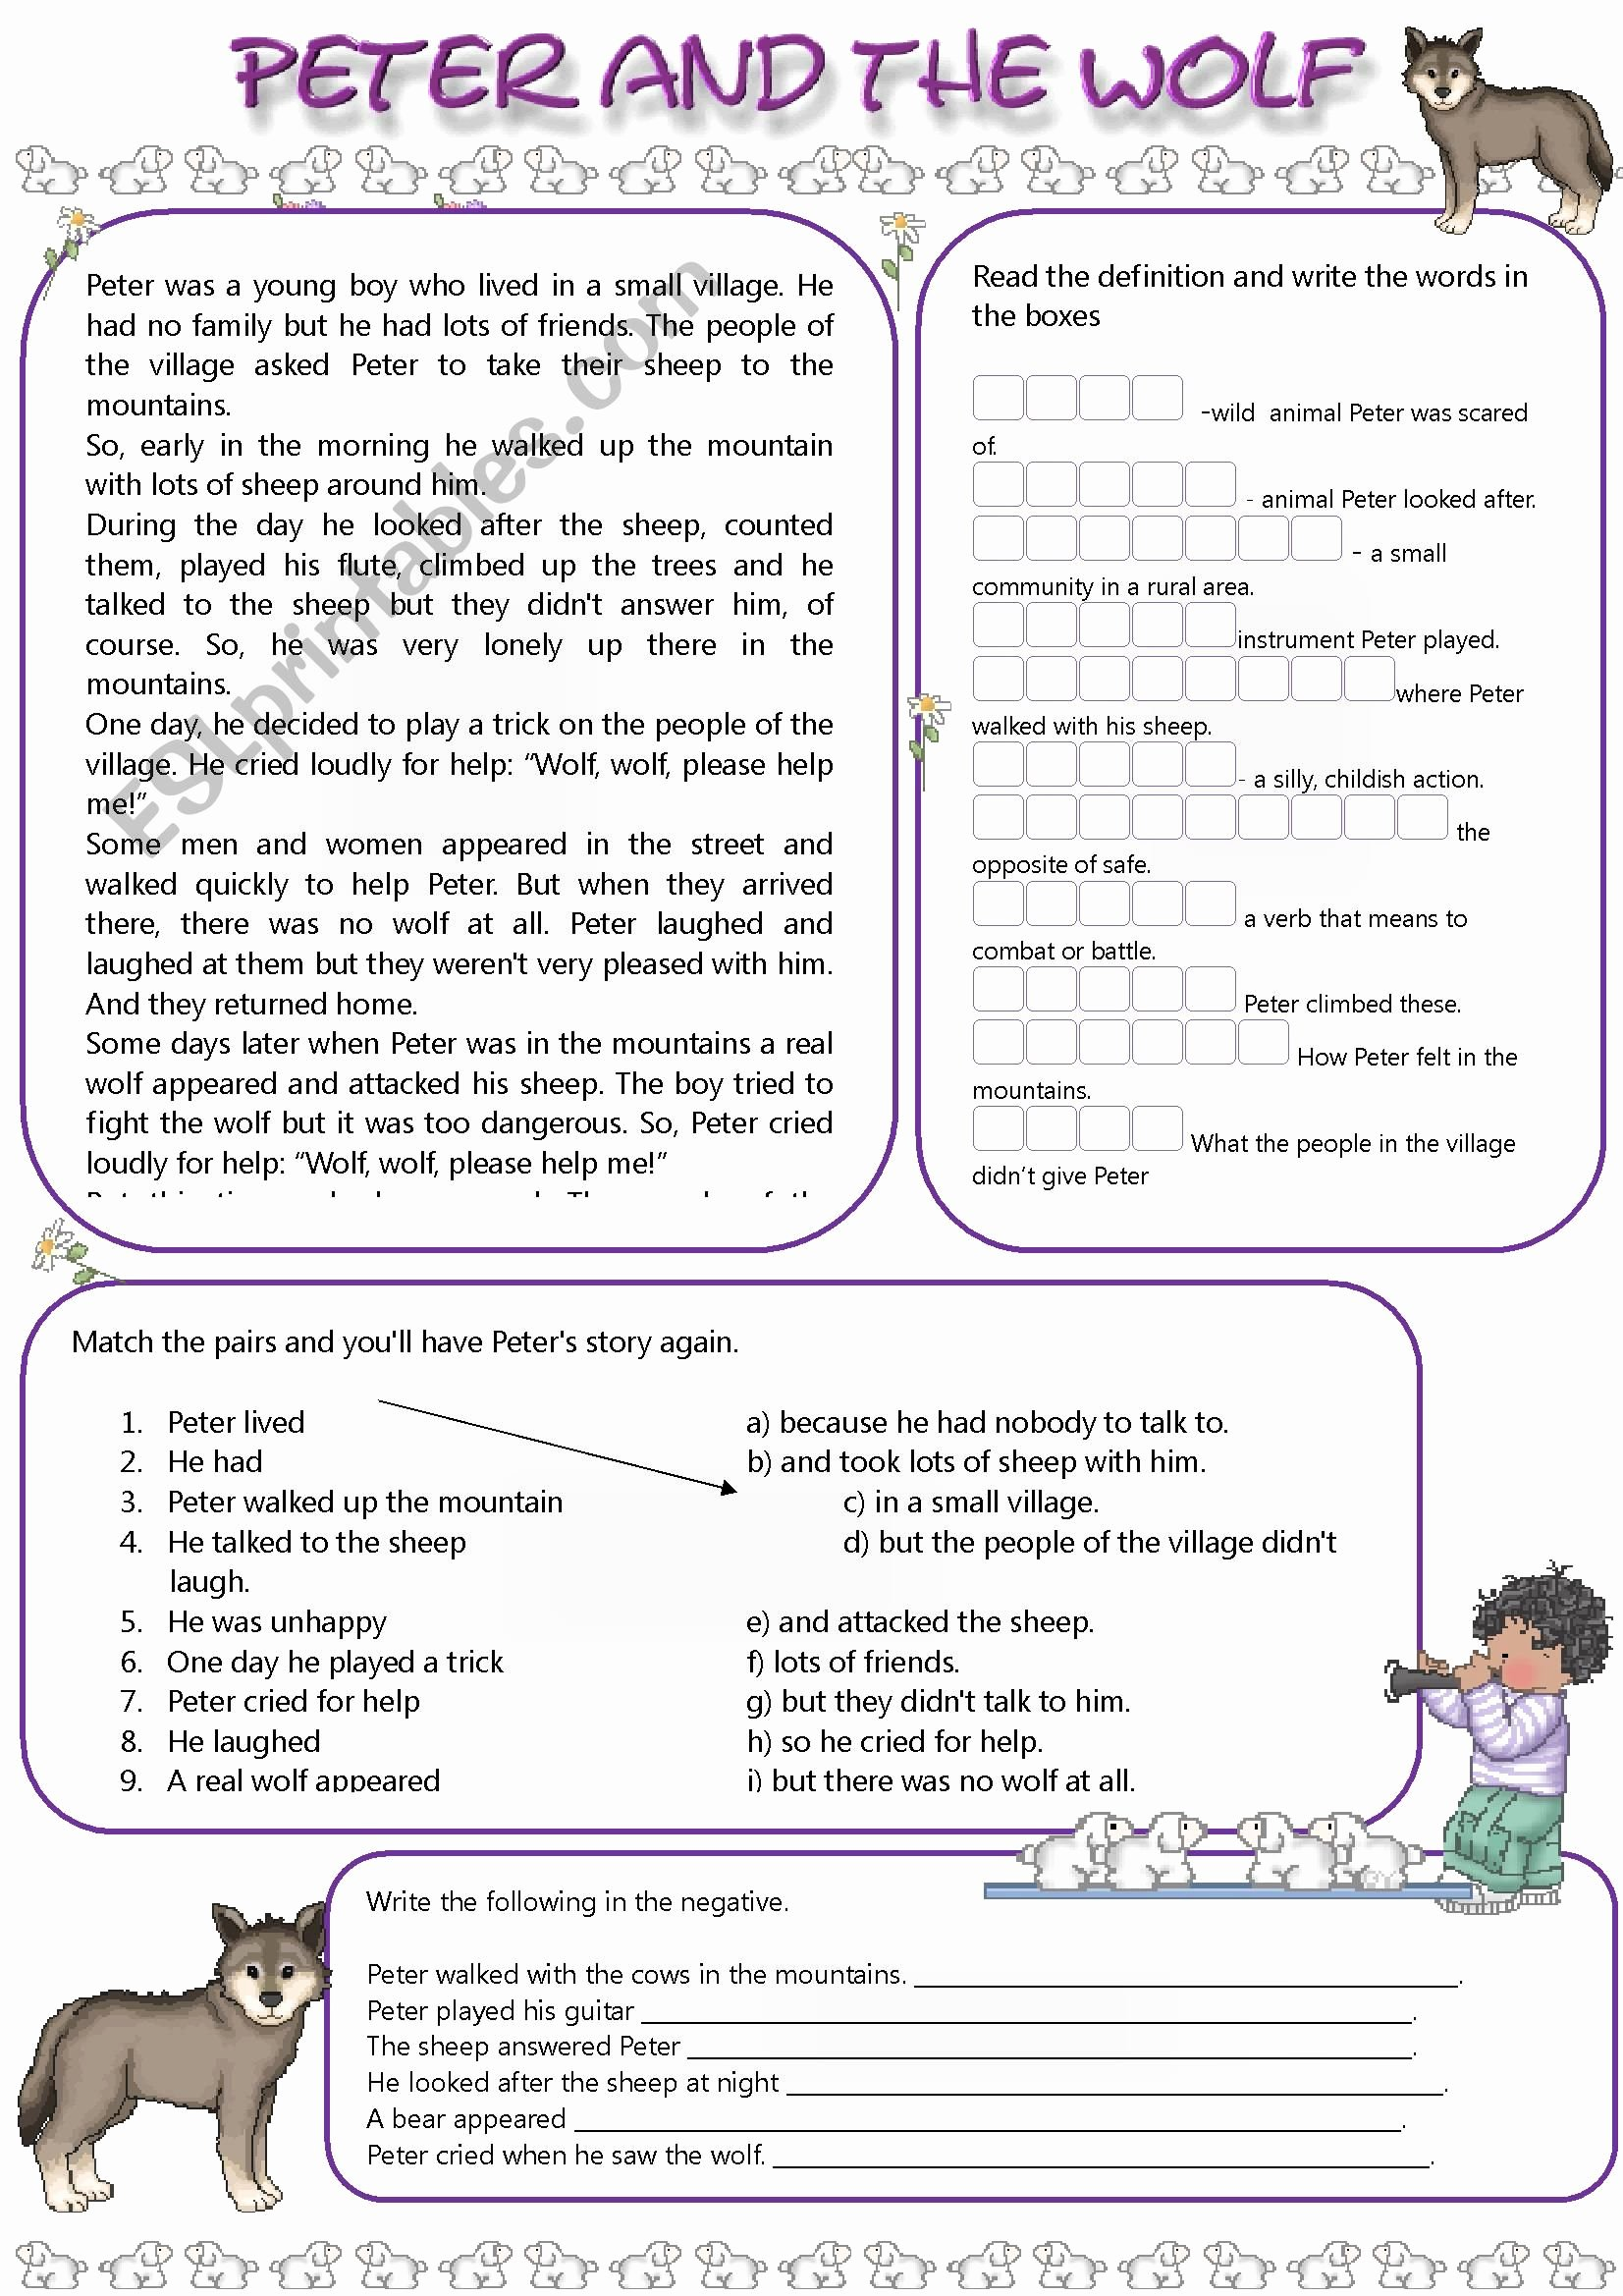 Peter and the Wolf Worksheet top Peter and the Wolf Esl Worksheet by Mandysantos